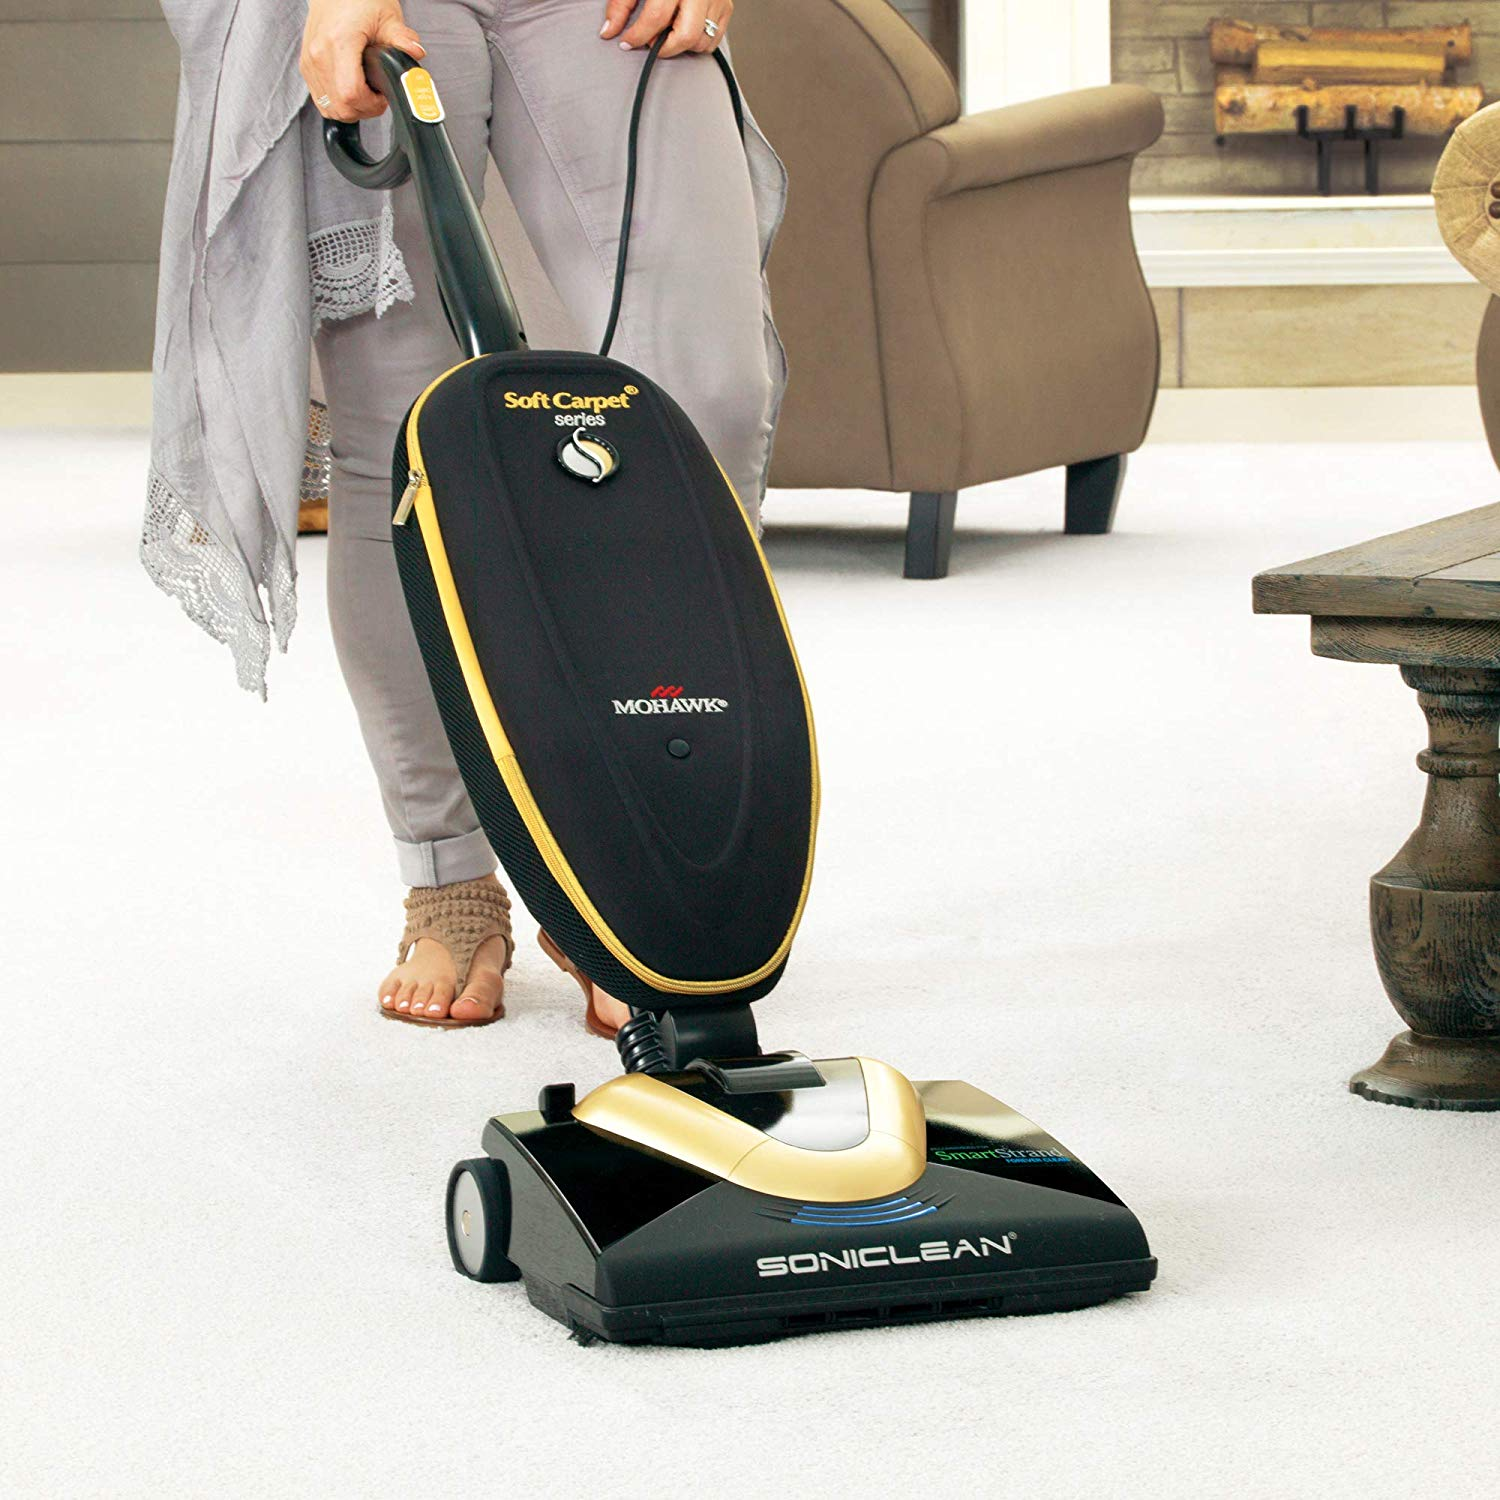 Soniclean Soft Carpet Vacuum